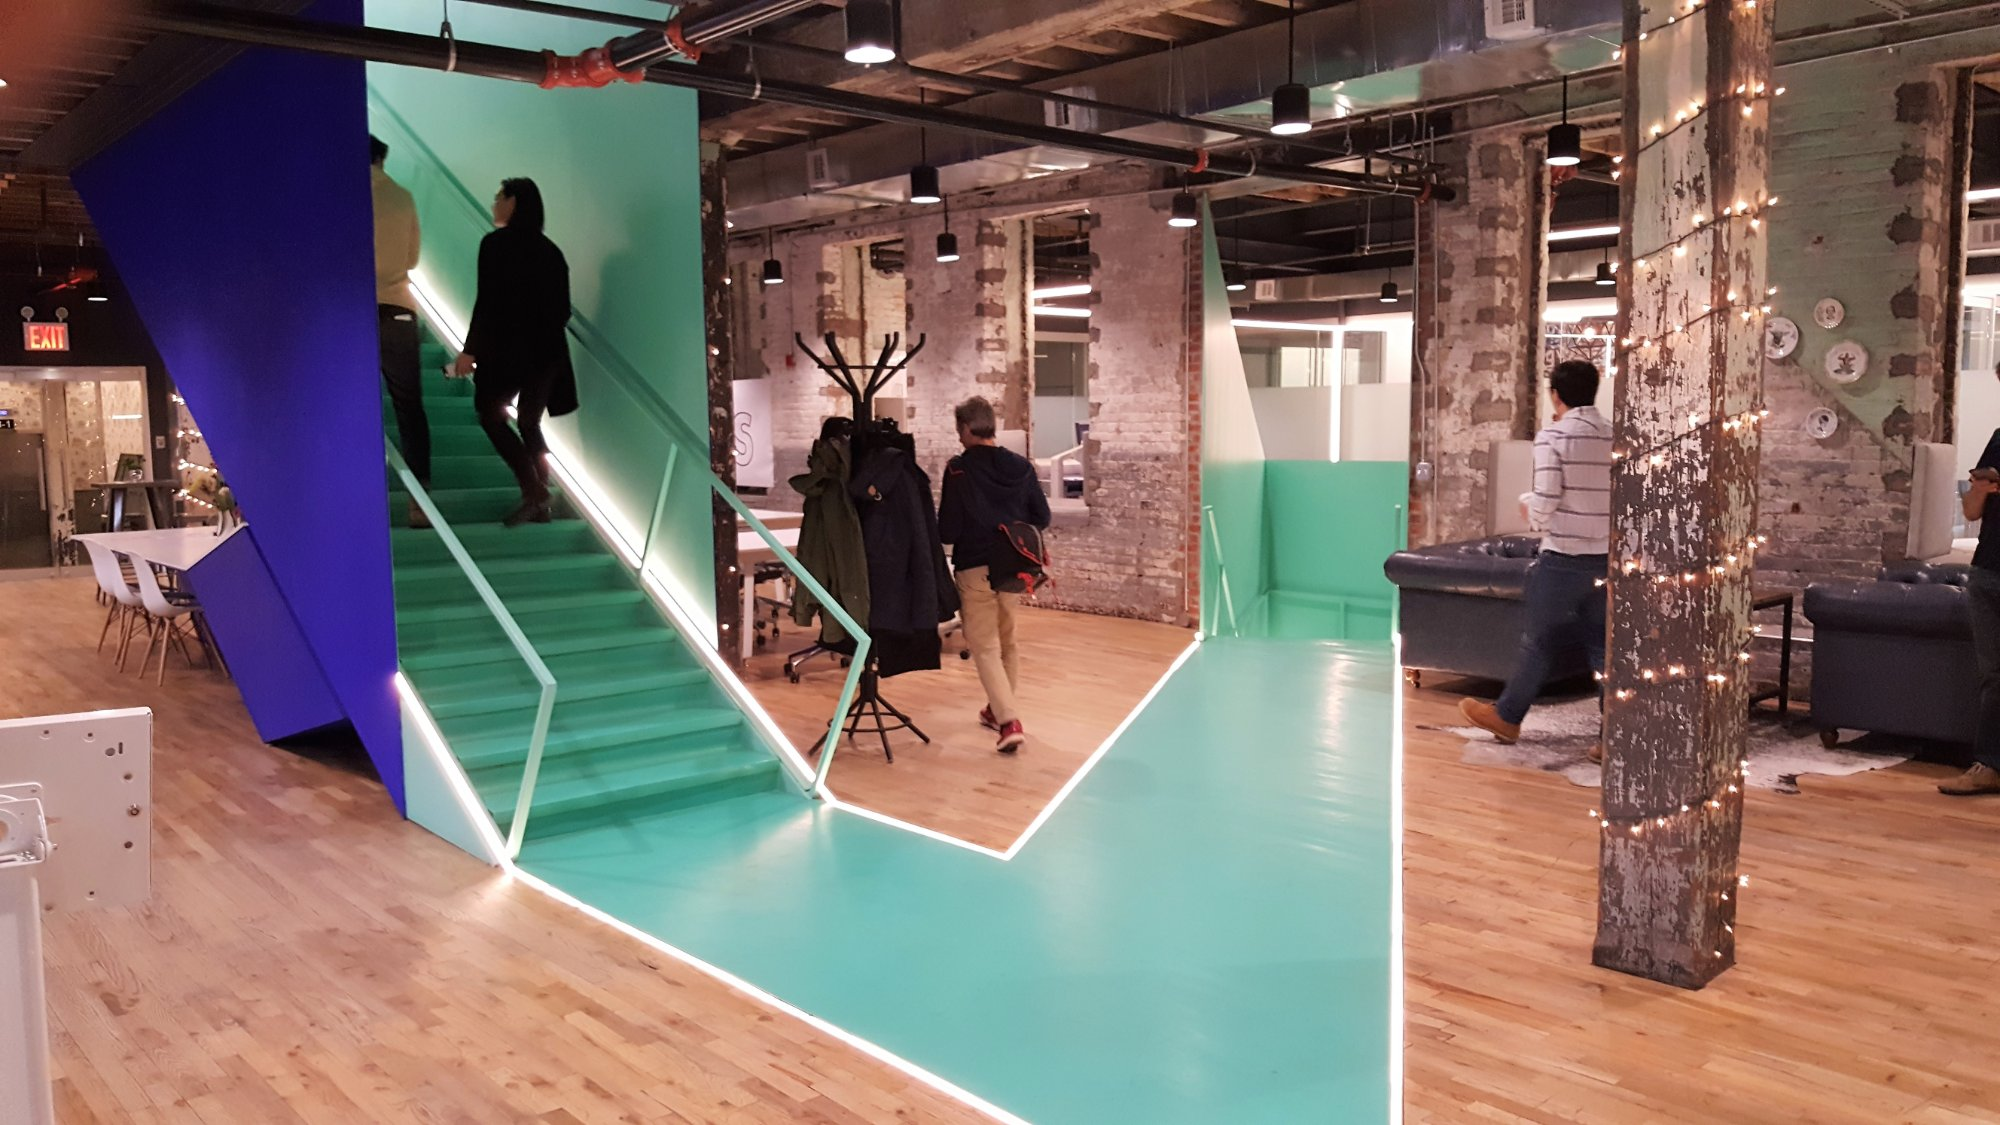 People walking upstairs at an open coworking space